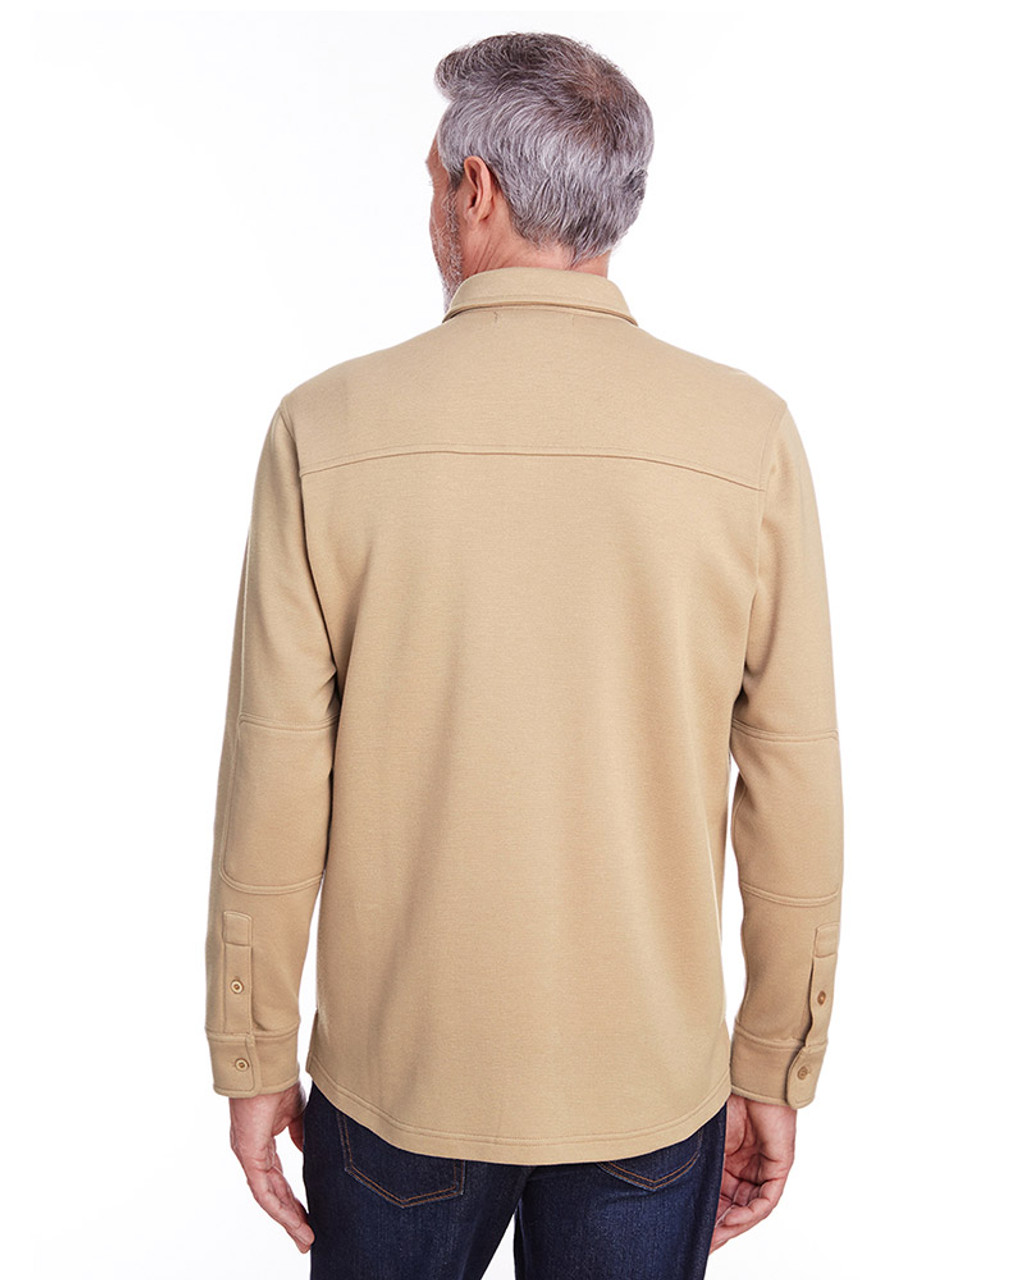 Khaki - back, M708 Harriton Adult StainBloc™ Pique Fleece Shirt-Jacket | Blankclothing.ca